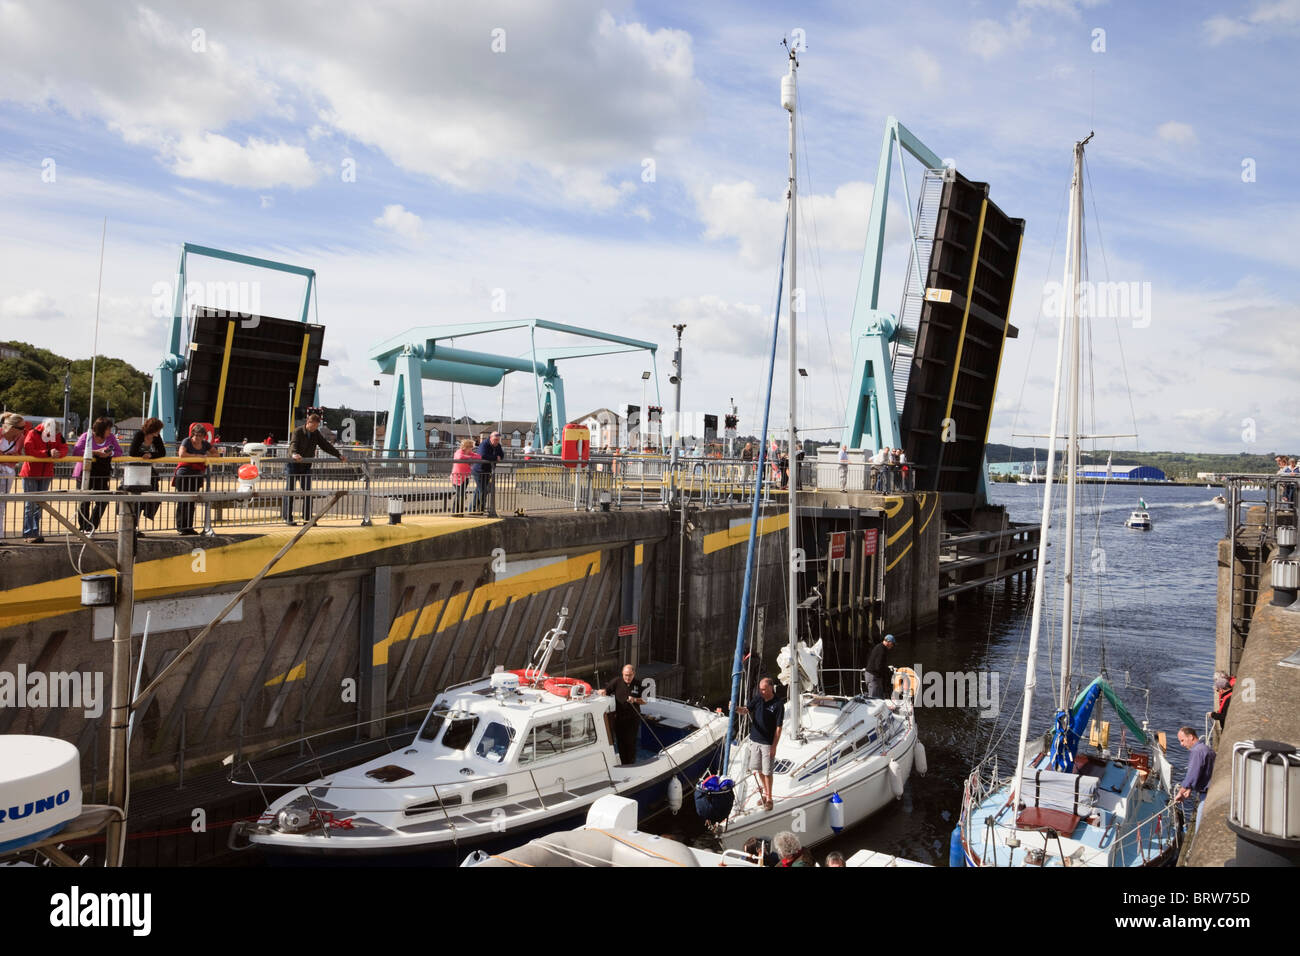 Cardiff Bay, Glamorgan, South Wales, UK. Tidal barrage bascule bridges open to let boats into navigation lock from - Stock Image